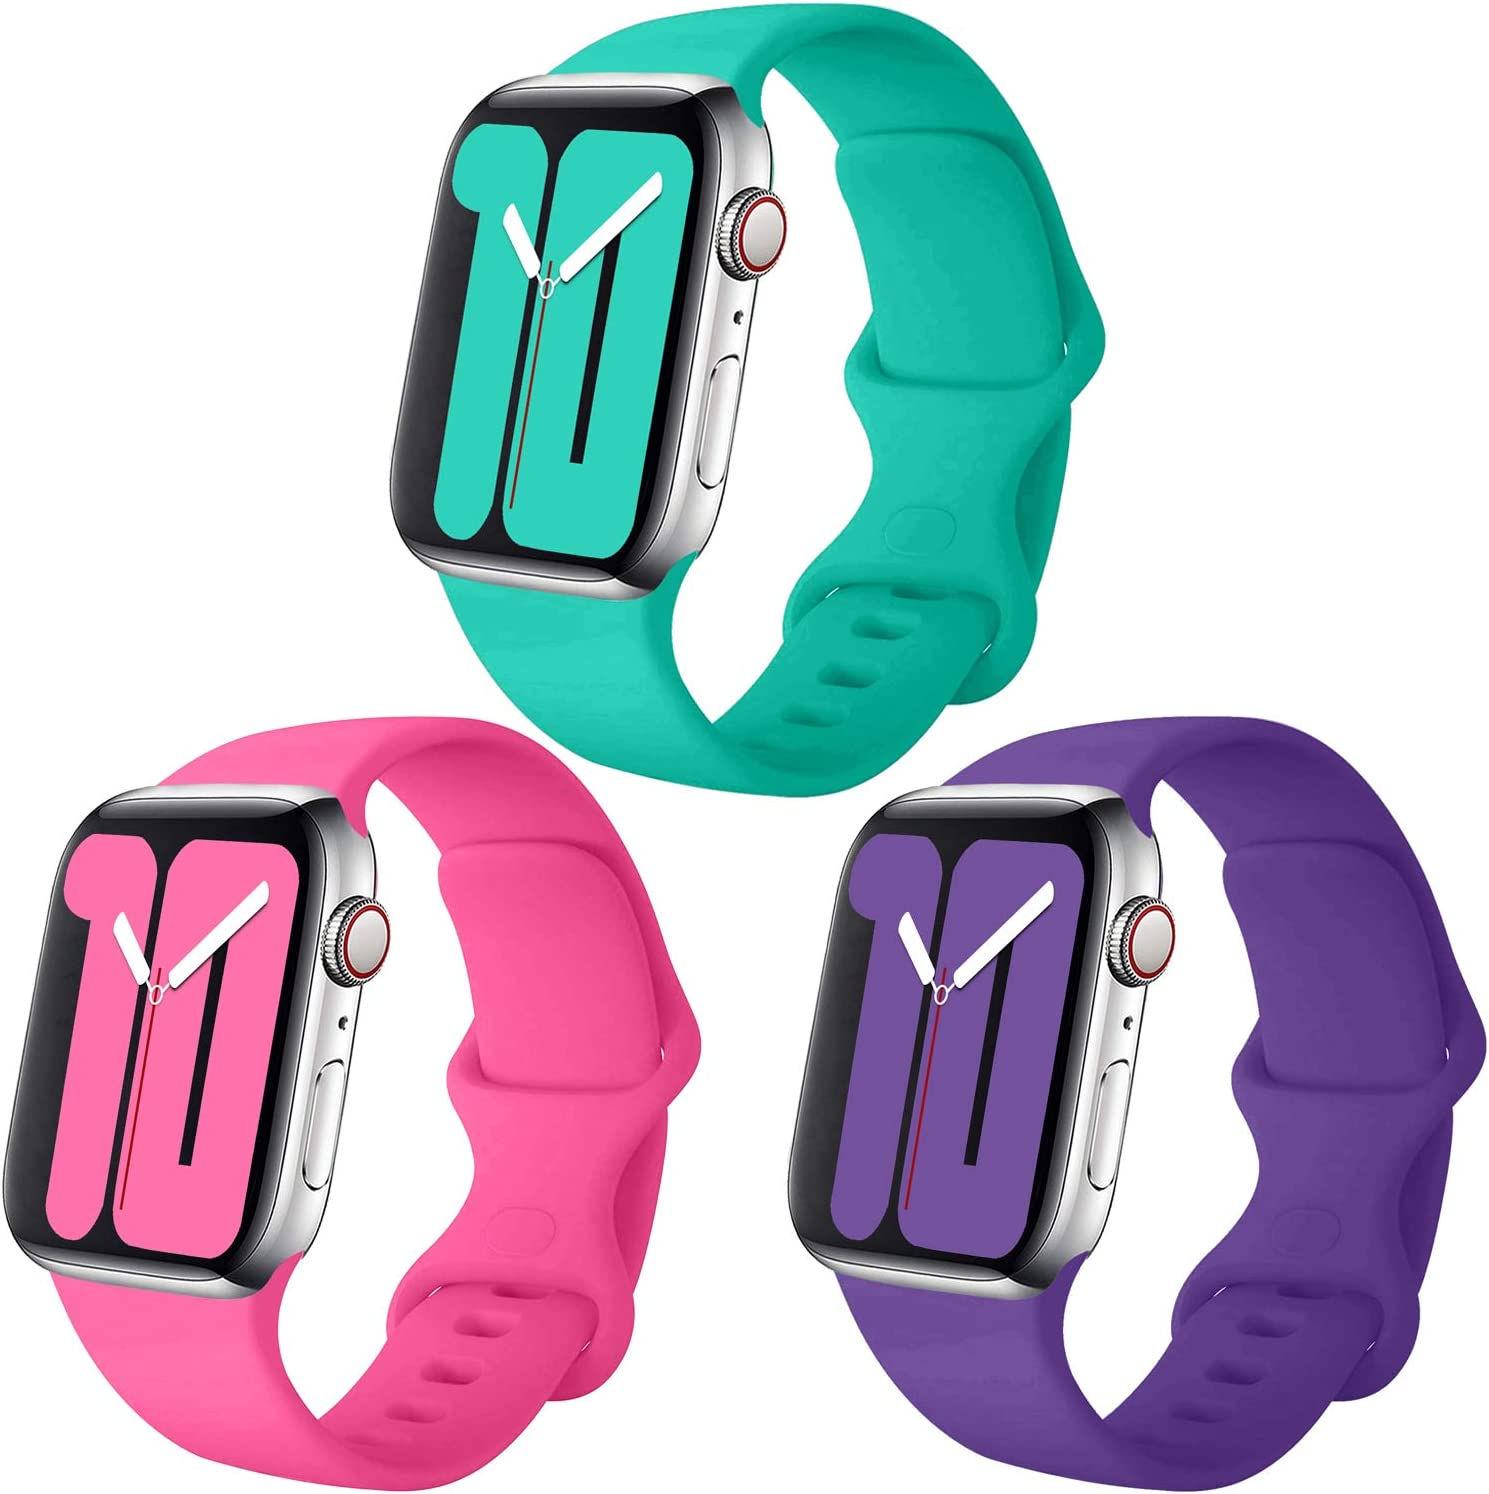 Misker Pack 3 Compatible with Apple Watch Band 38mm 40mm 42mm 44mm,for iWatch Series 5, 4, 3, 2, 1 (Barbie Pink/Deep Purple/Teal, 38mm(40mm)-S/M)